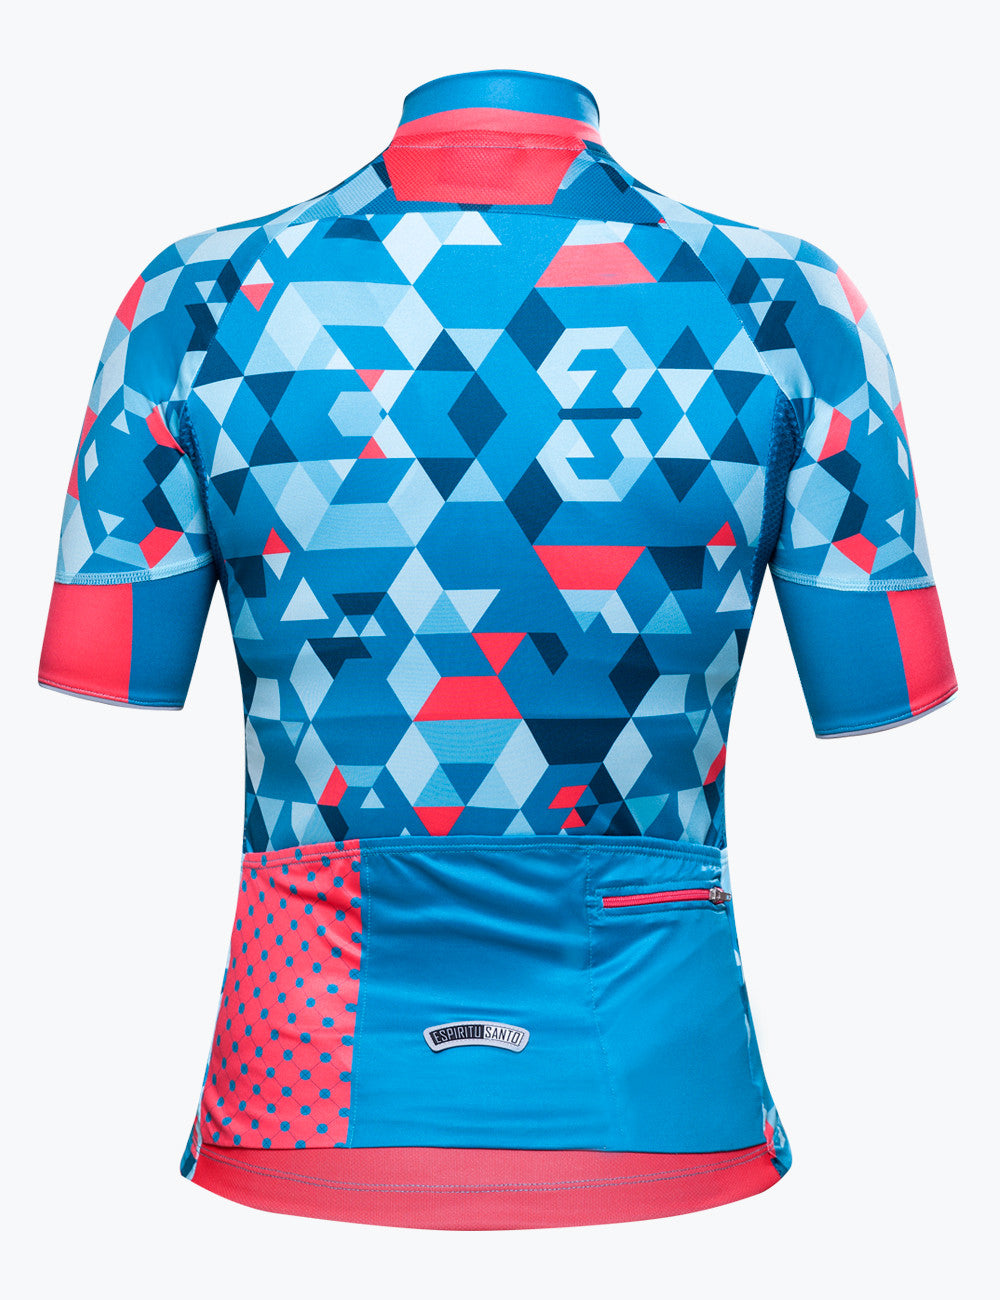 Preorder ES'17 - Abstraction - Short Sleeve Jersey. Women